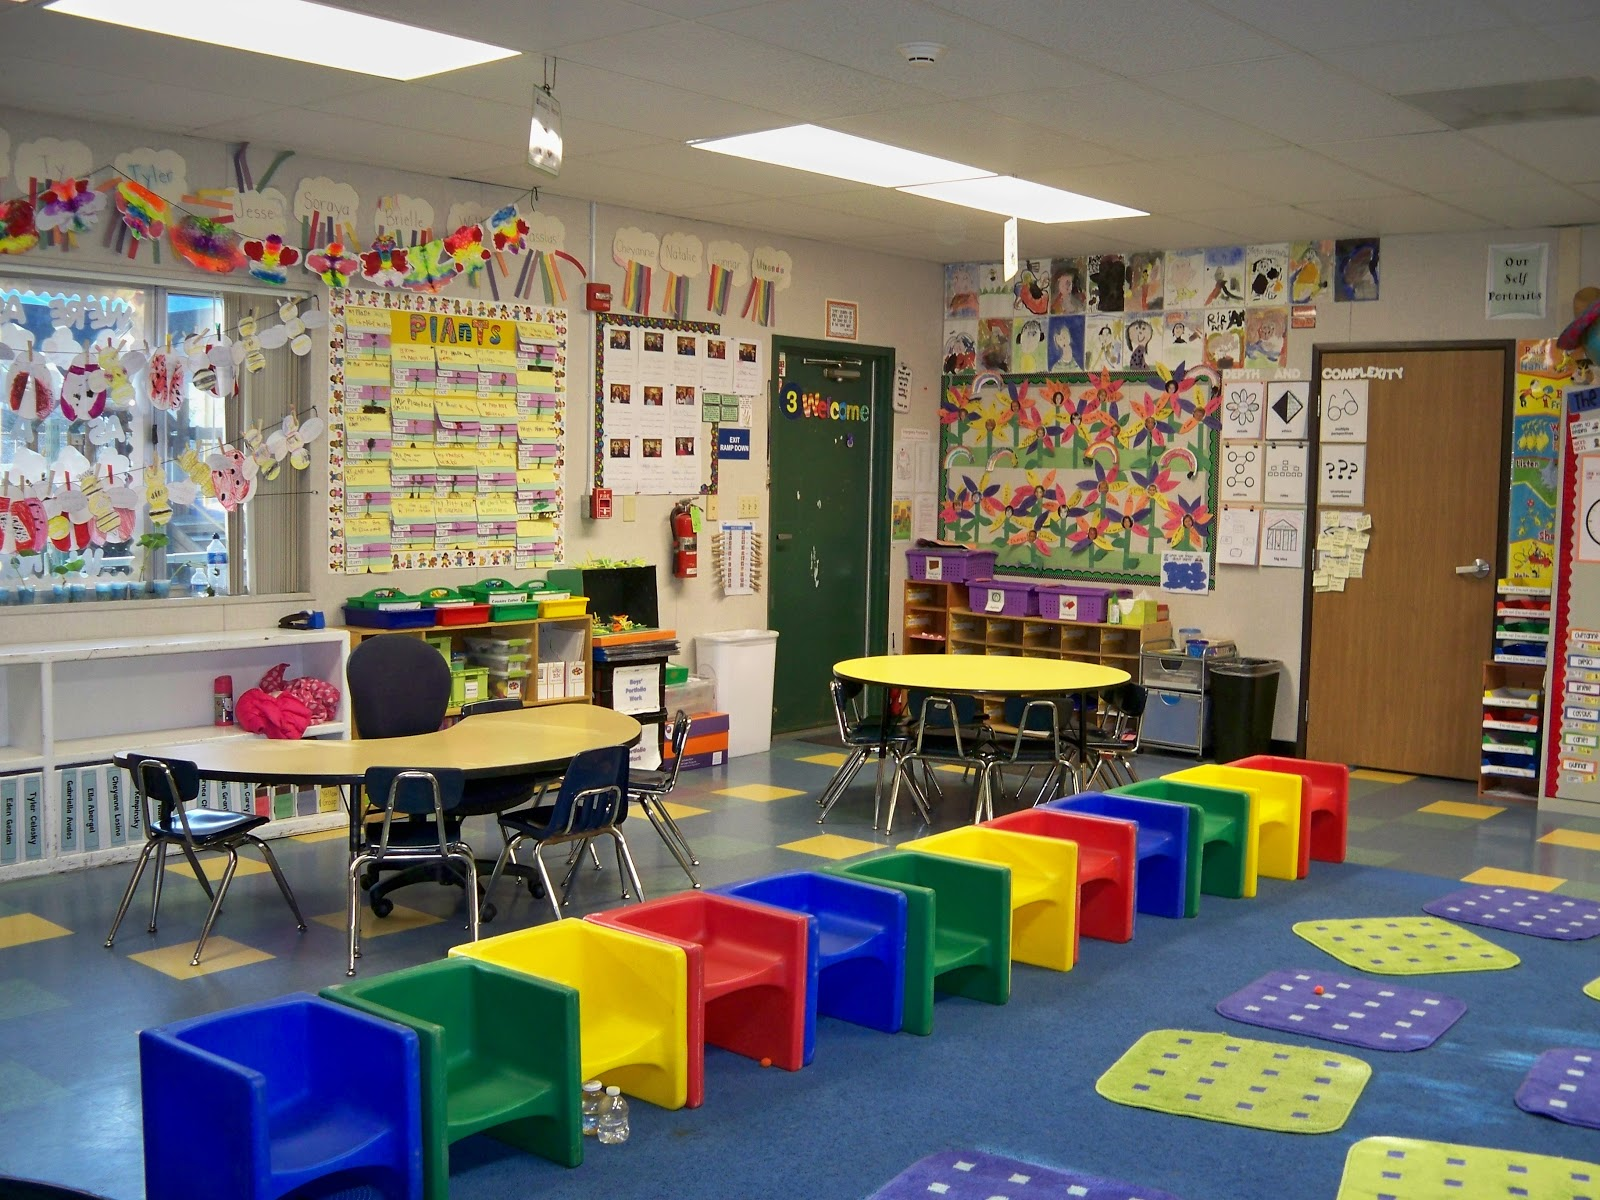 kindergarten classroom pictures design images galleries with a bite. Black Bedroom Furniture Sets. Home Design Ideas